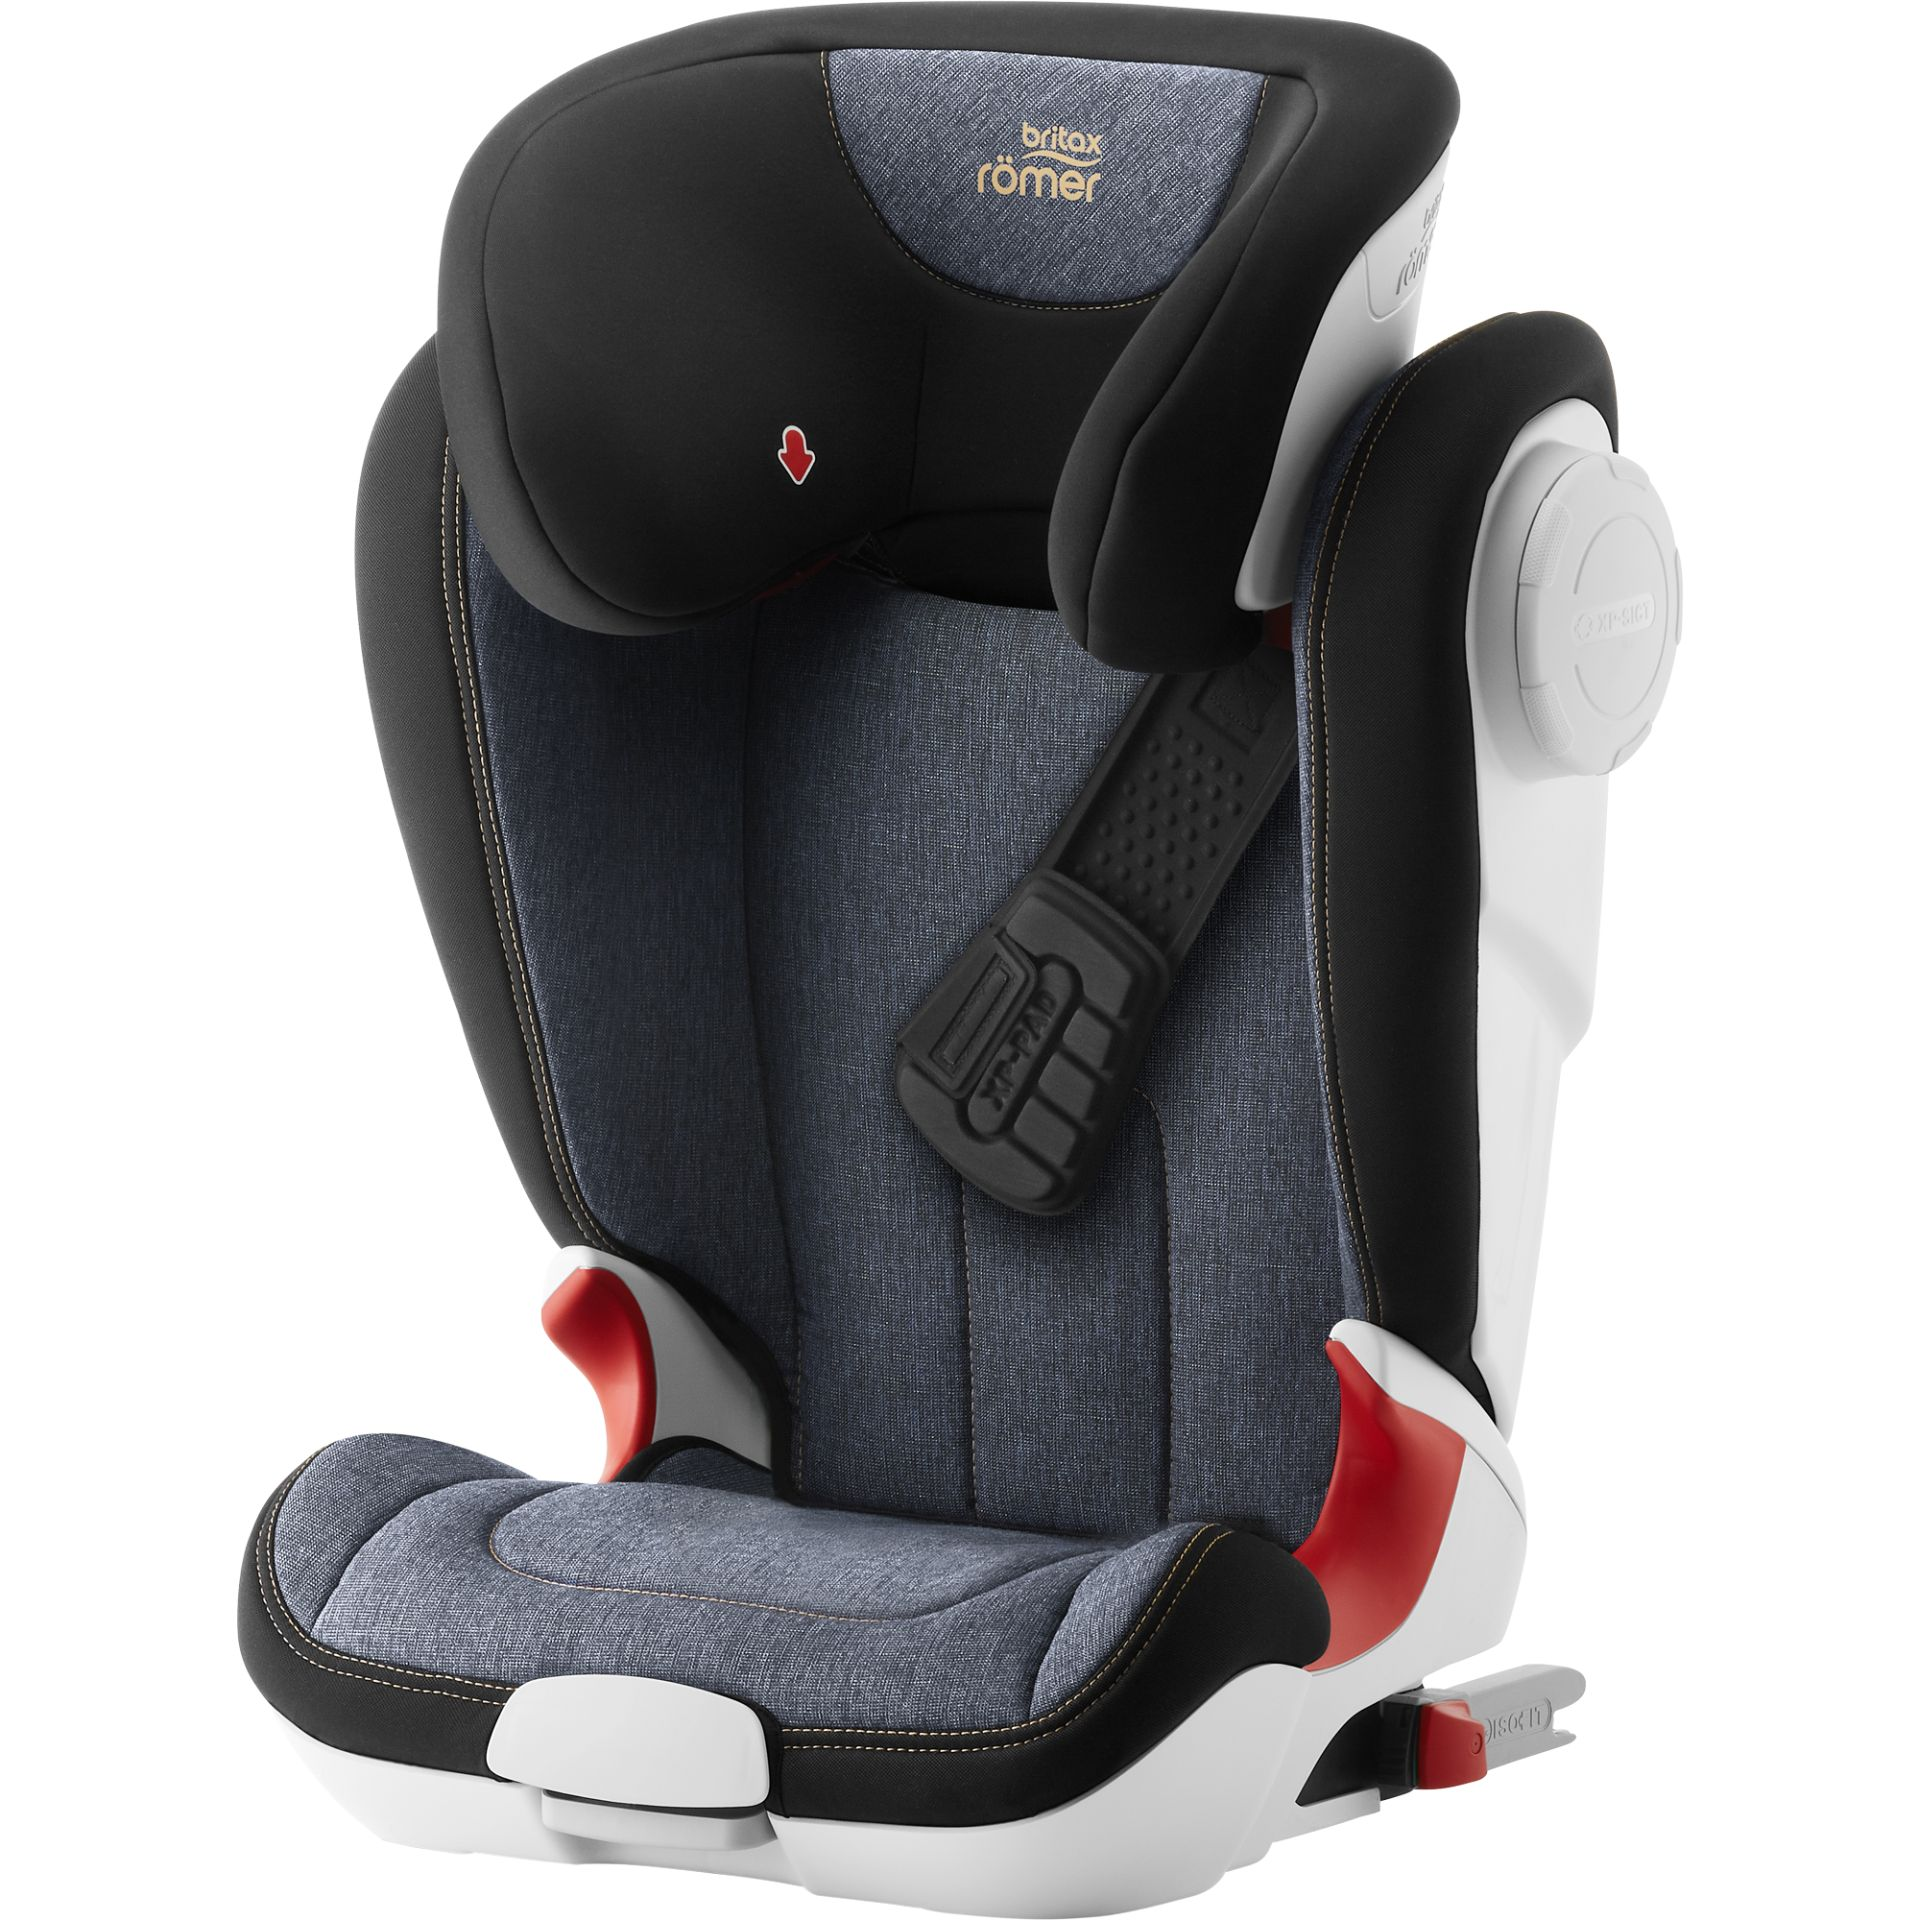 britax r mer car seat kidfix xp sict 2018 blue marble buy at kidsroom car seats. Black Bedroom Furniture Sets. Home Design Ideas